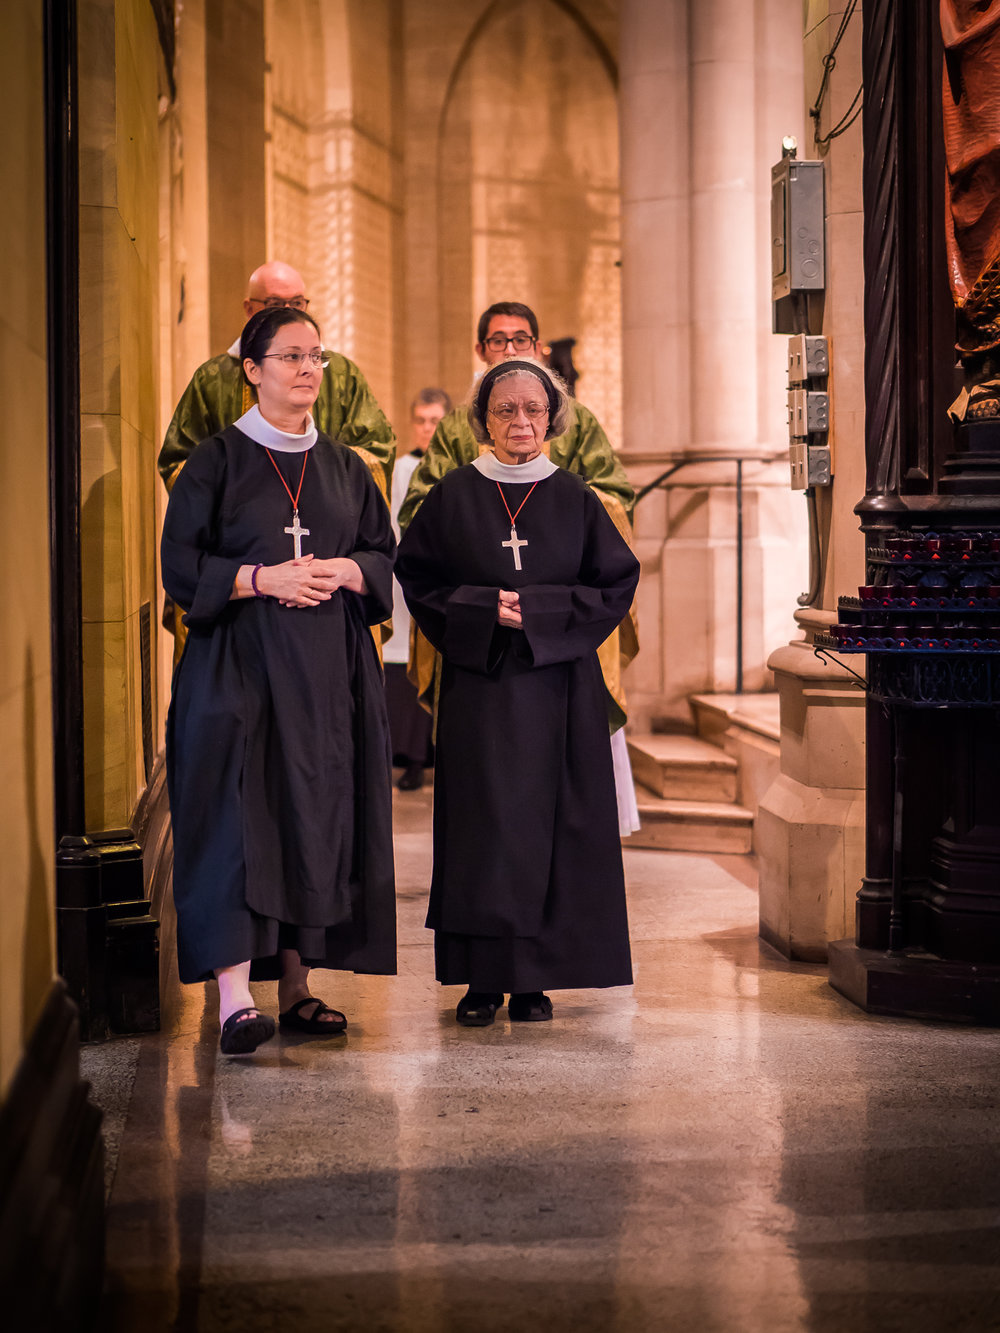 Sr. Monica Clare, C.S.J.B. (L) and Sr. Laura Katharine, C.S.J.B., Sunday, August 5, 2018   Photo by Ricardo Gomez